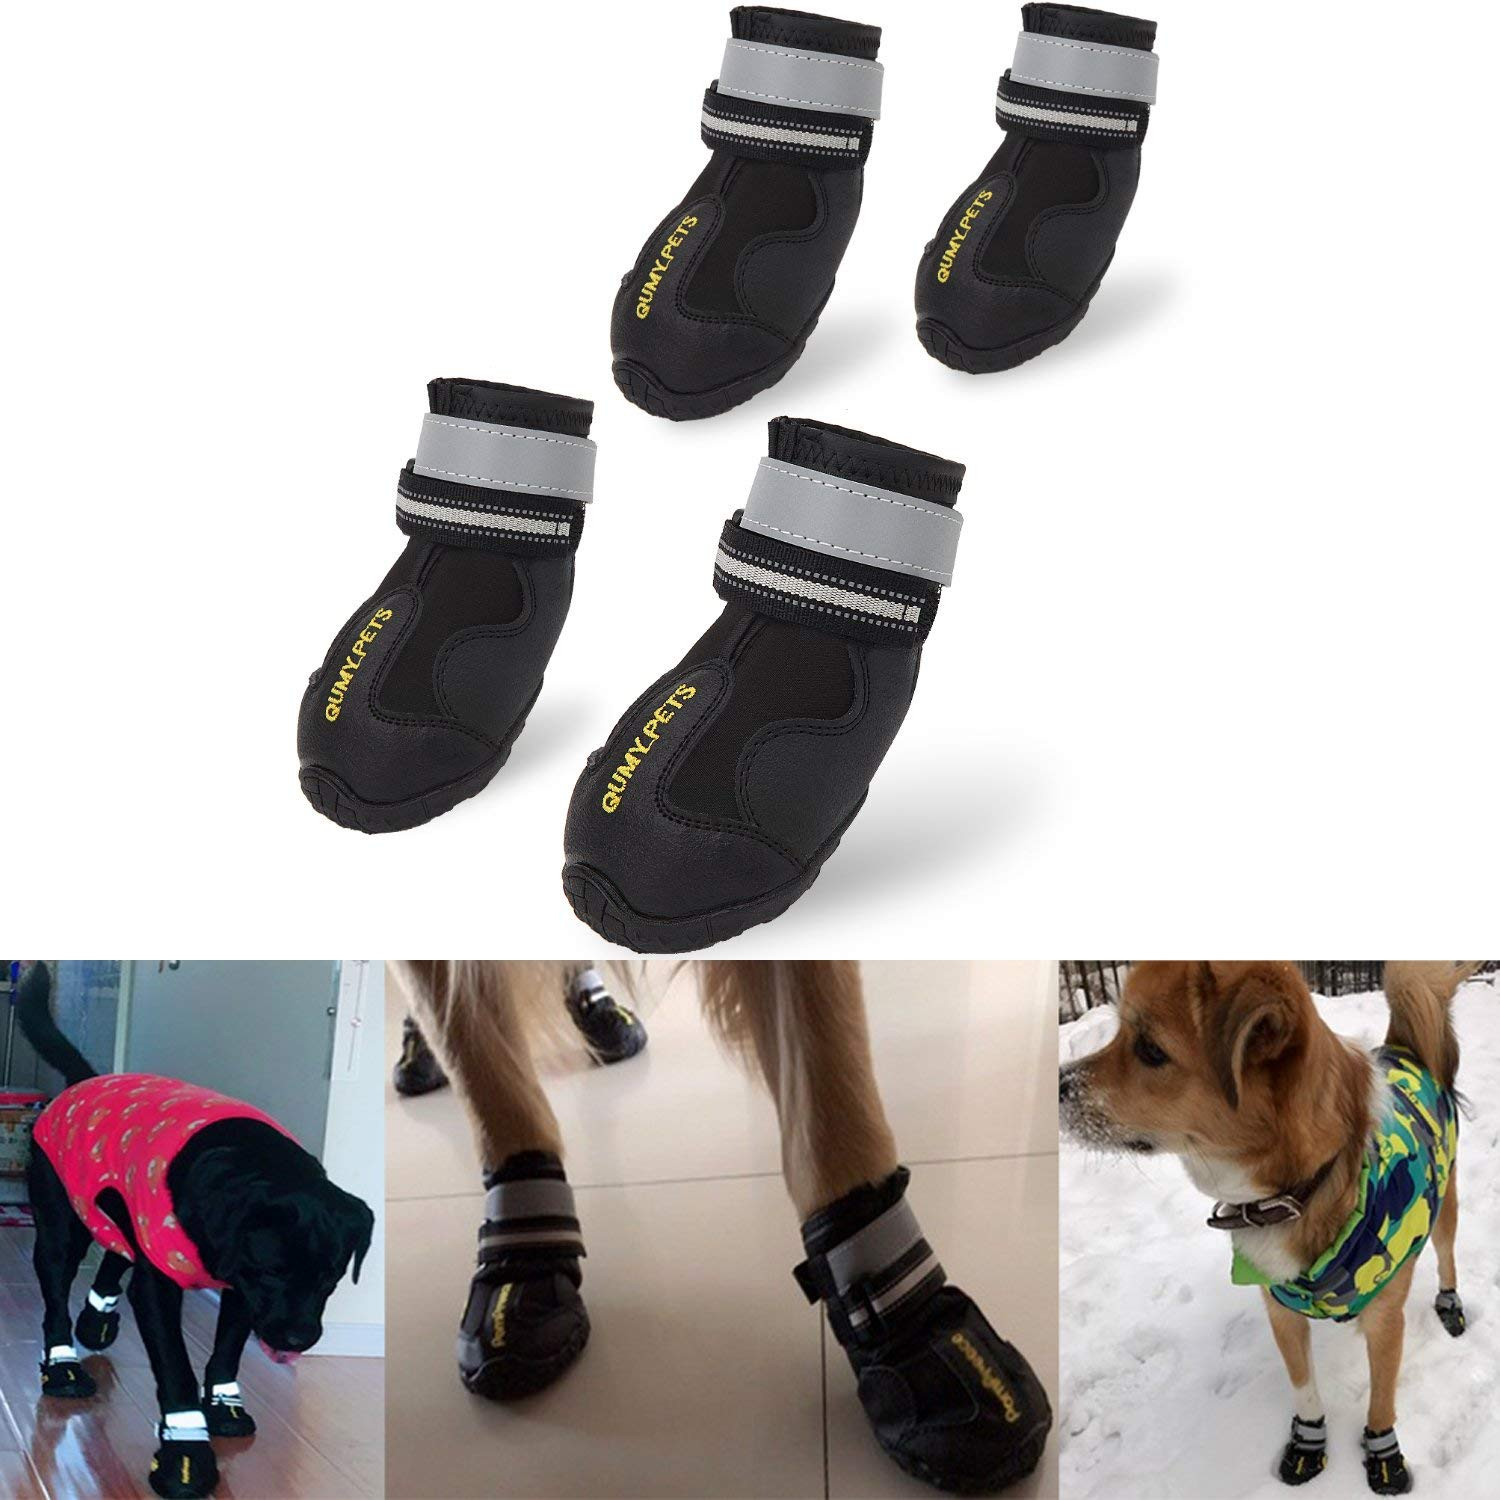 pets and hardwood floors of dog shoes hardwood floors dahuacctvth com intended for dog shoes hardwood floors